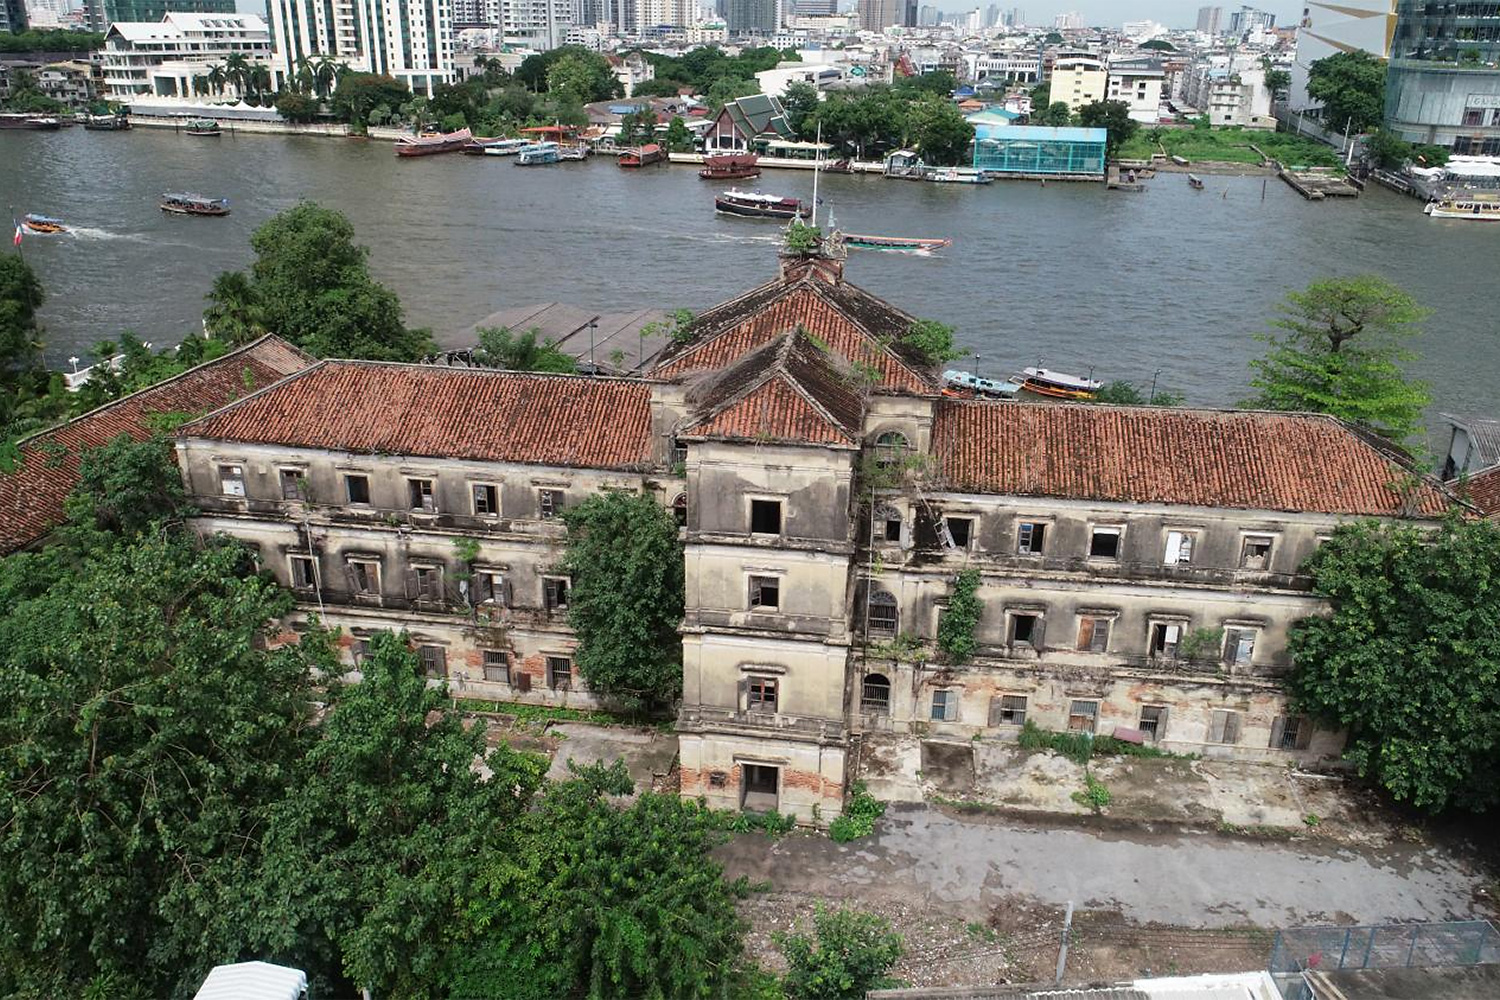 The project comprises a 130-year-old building on the banks of the Chao Phraya River, owned by the Treasury Department.